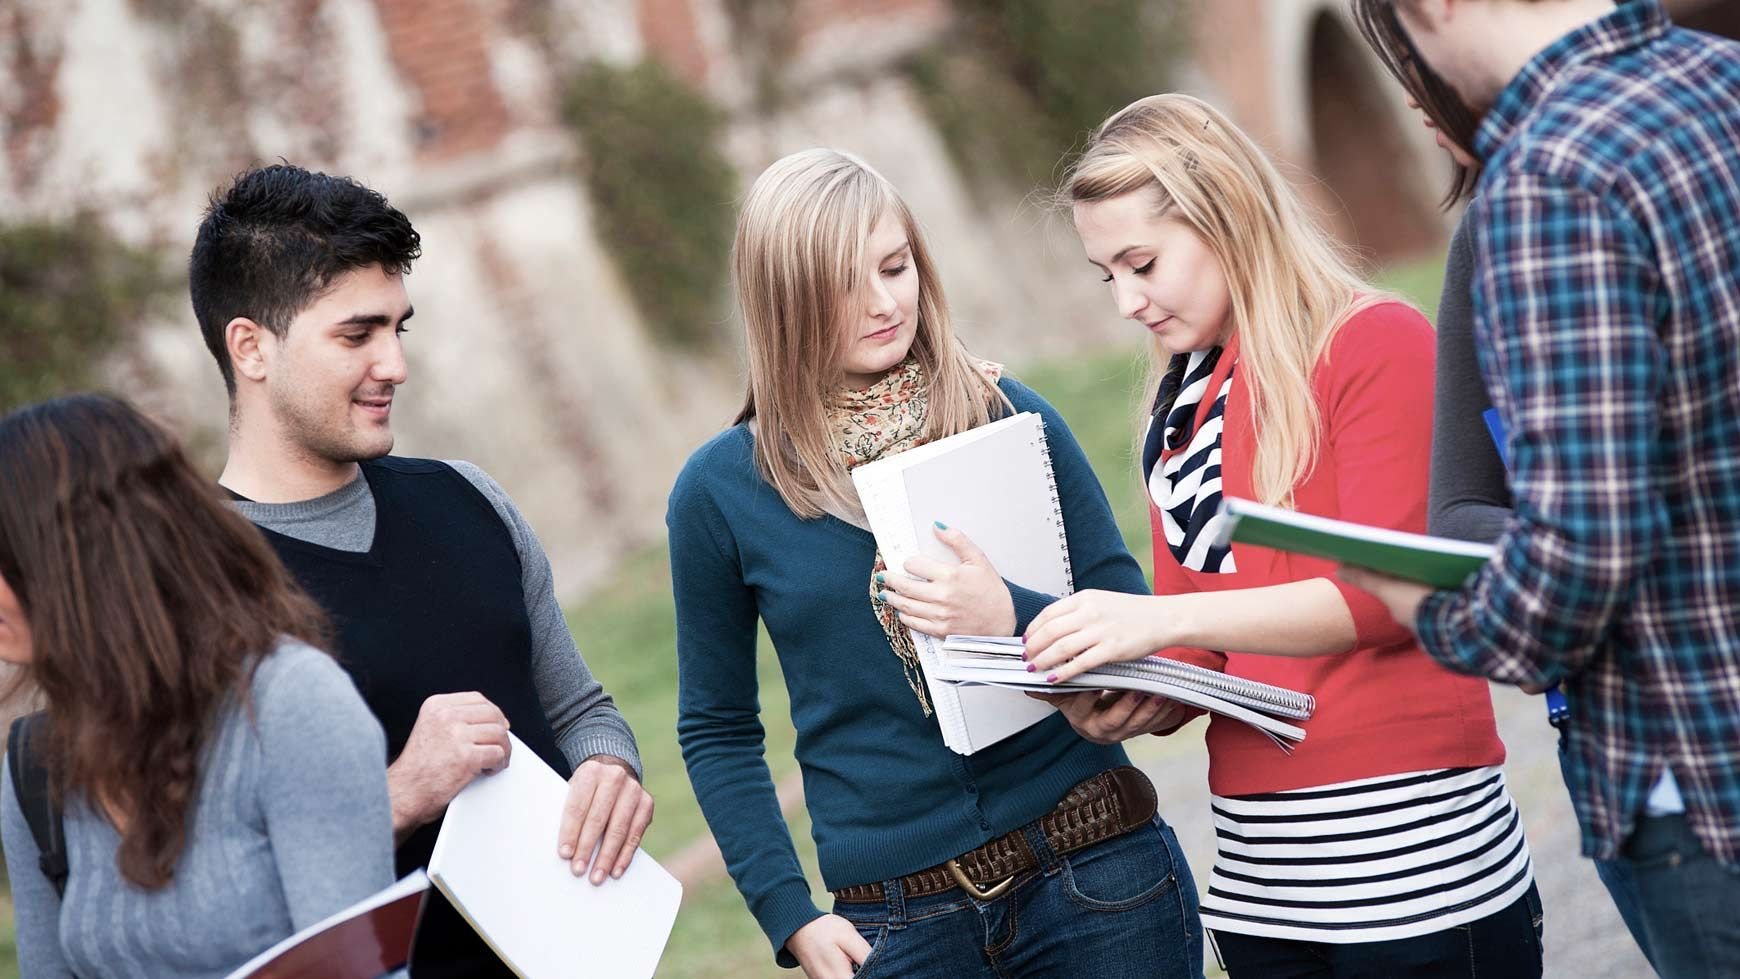 Checklist Questions That Can Help Teens Build Self